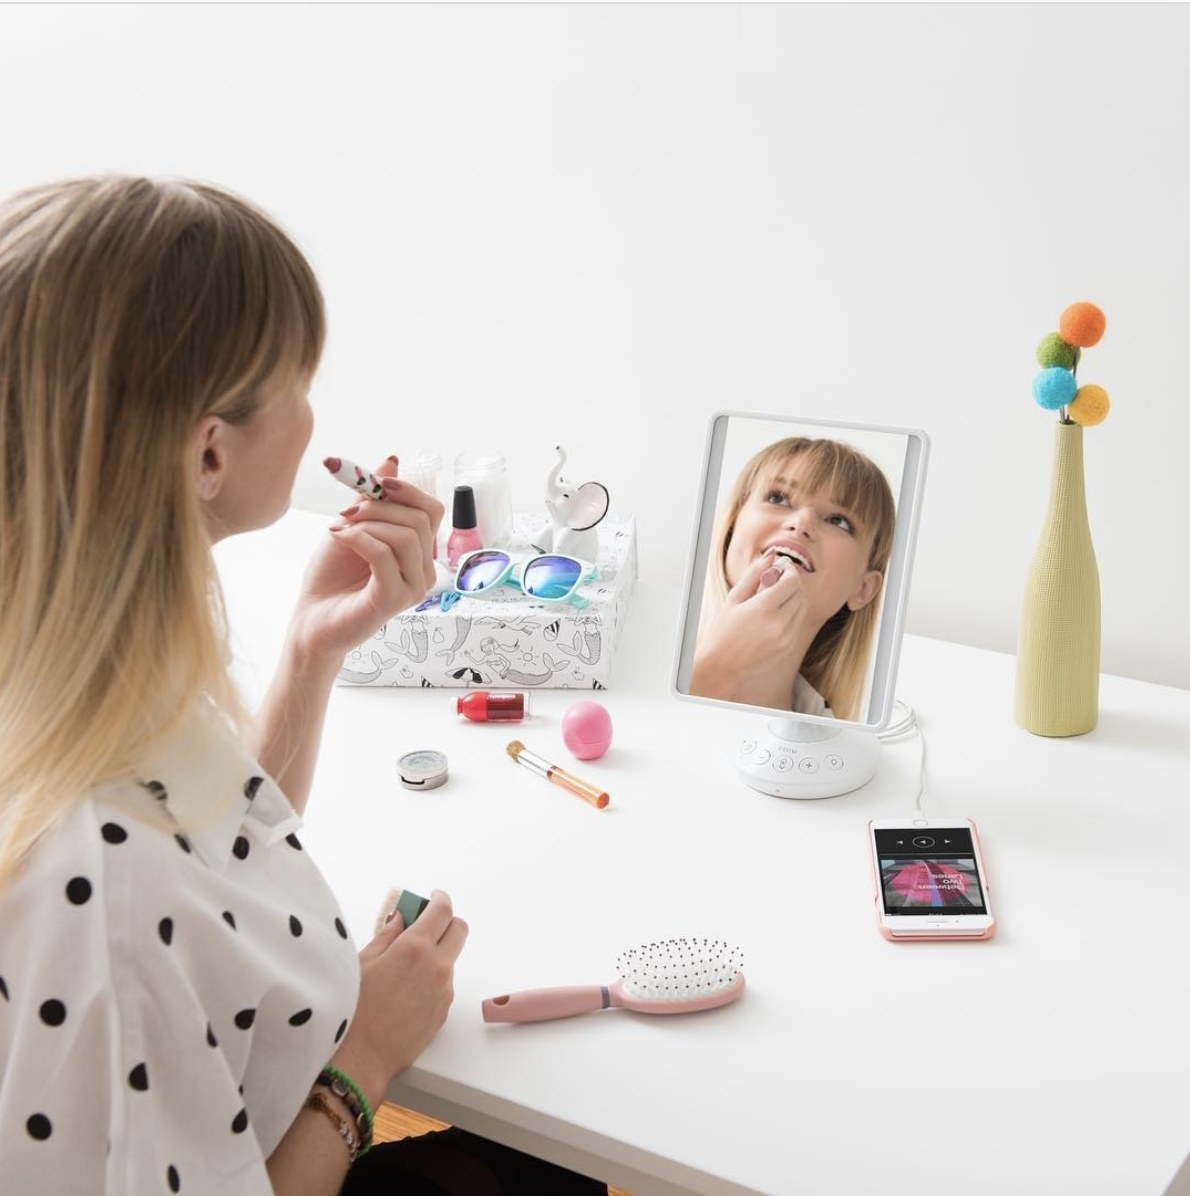 Person is applying makeup while looking into an iHome mirror